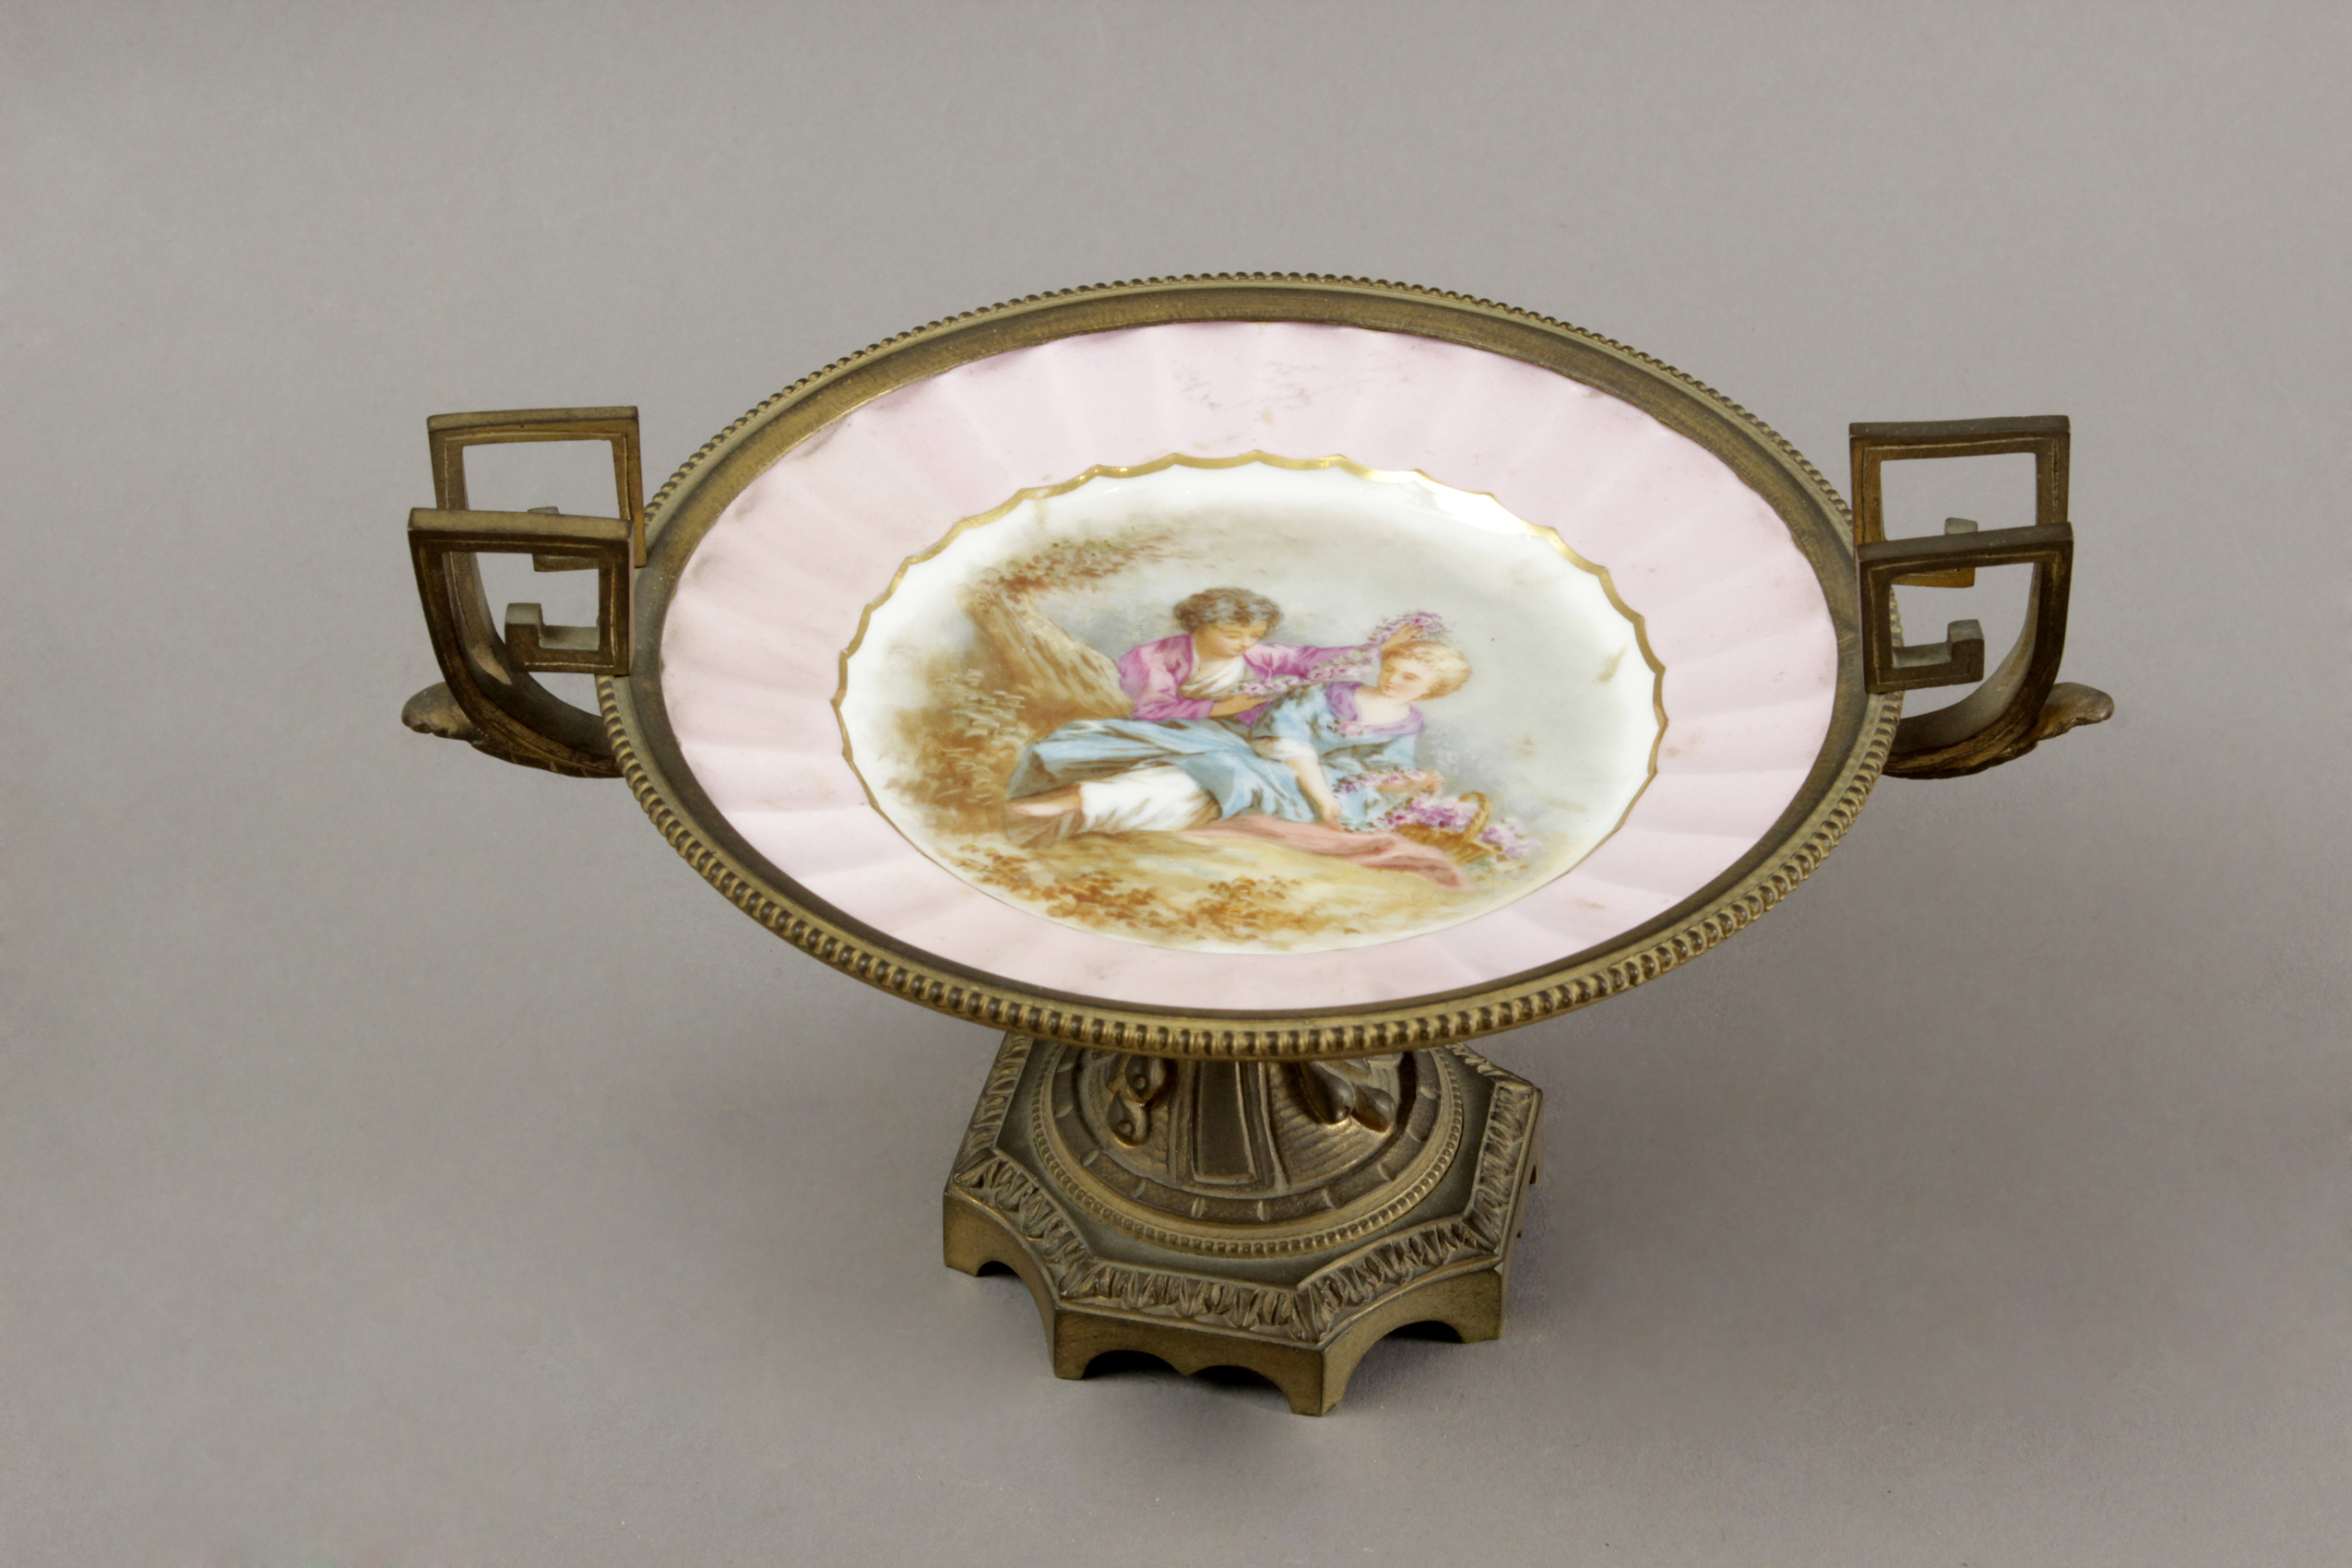 A late 19th century French gilt bronze centrepiece with a Sévres porcelain plate